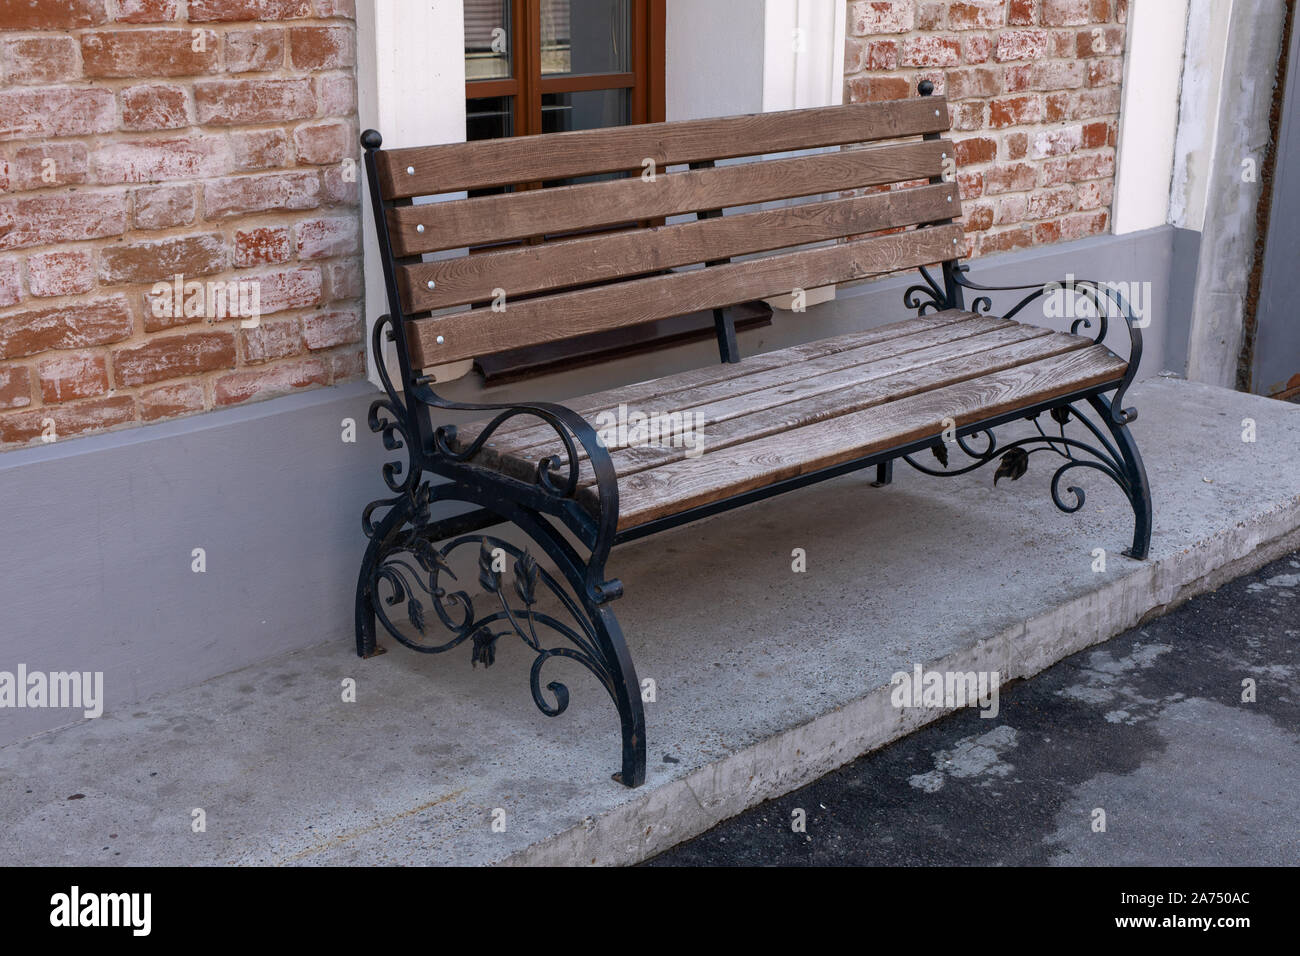 Fantastic Texture Background Urban Landscape Bench With Wrought Iron Pdpeps Interior Chair Design Pdpepsorg